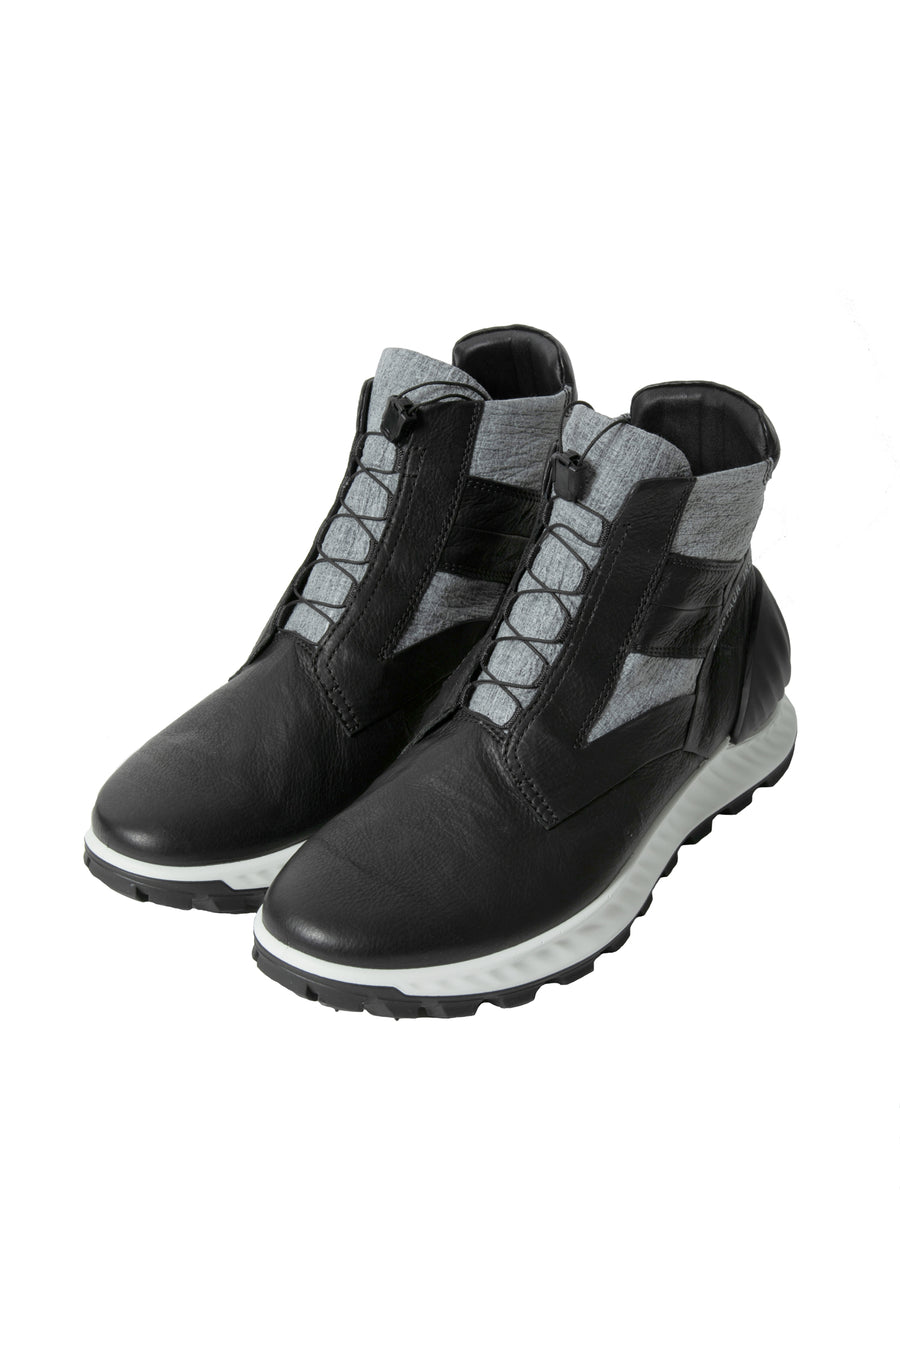 ECCO Dyneema Leather Boots